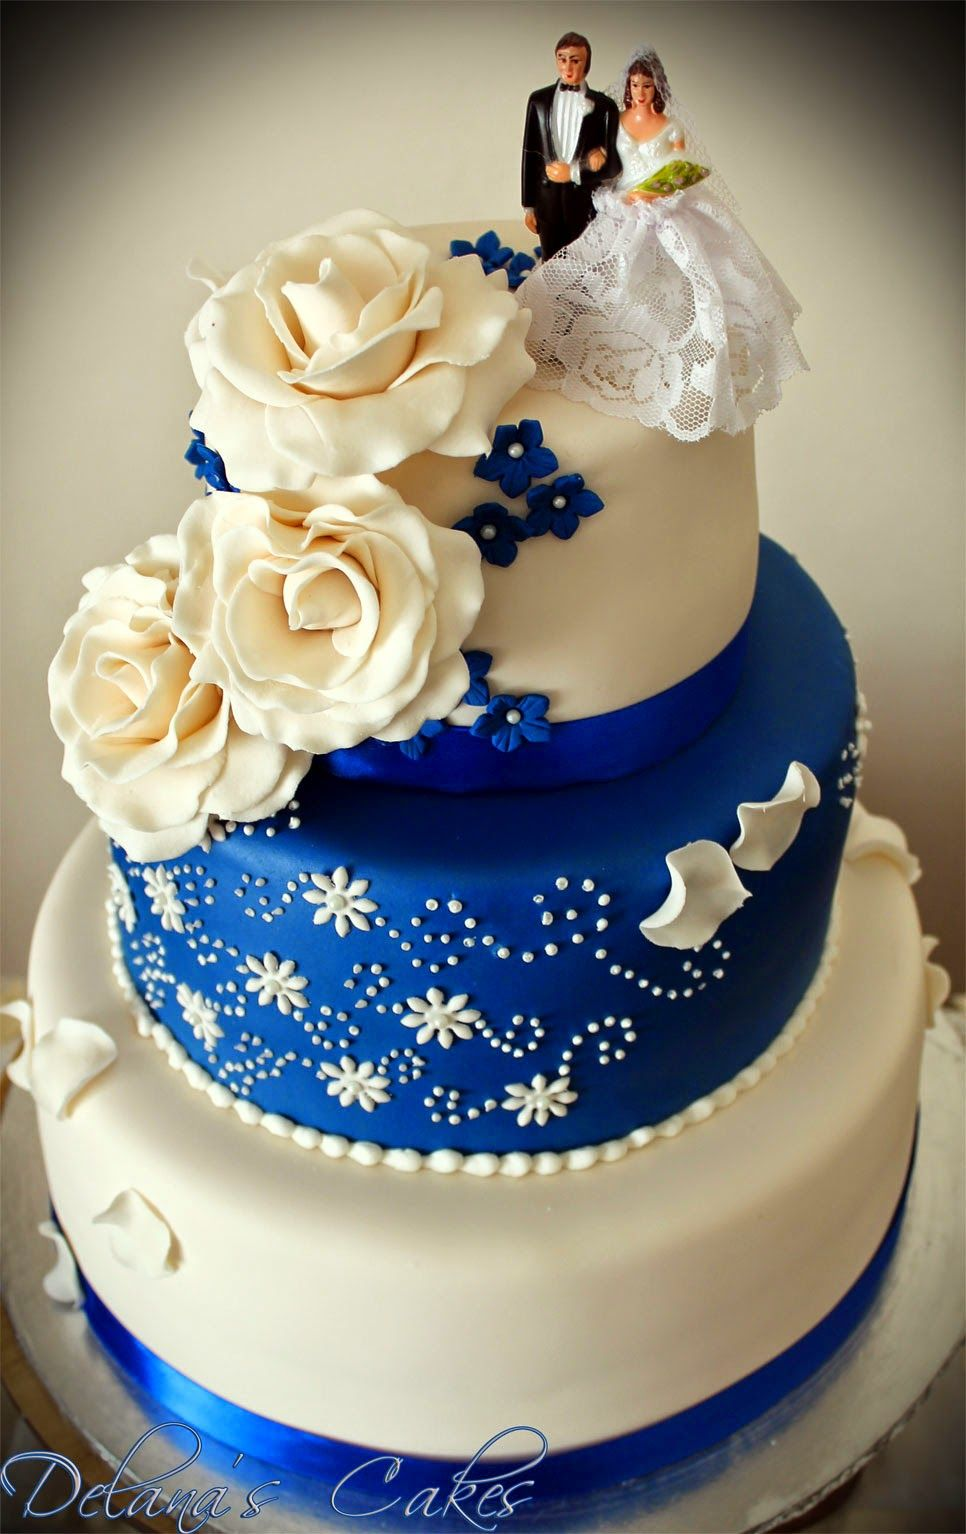 This Is The Kind Of Cake I Want At My Wedding Royal Blue Wedding Cakes Wedding Cakes Blue Silver Wedding Cake